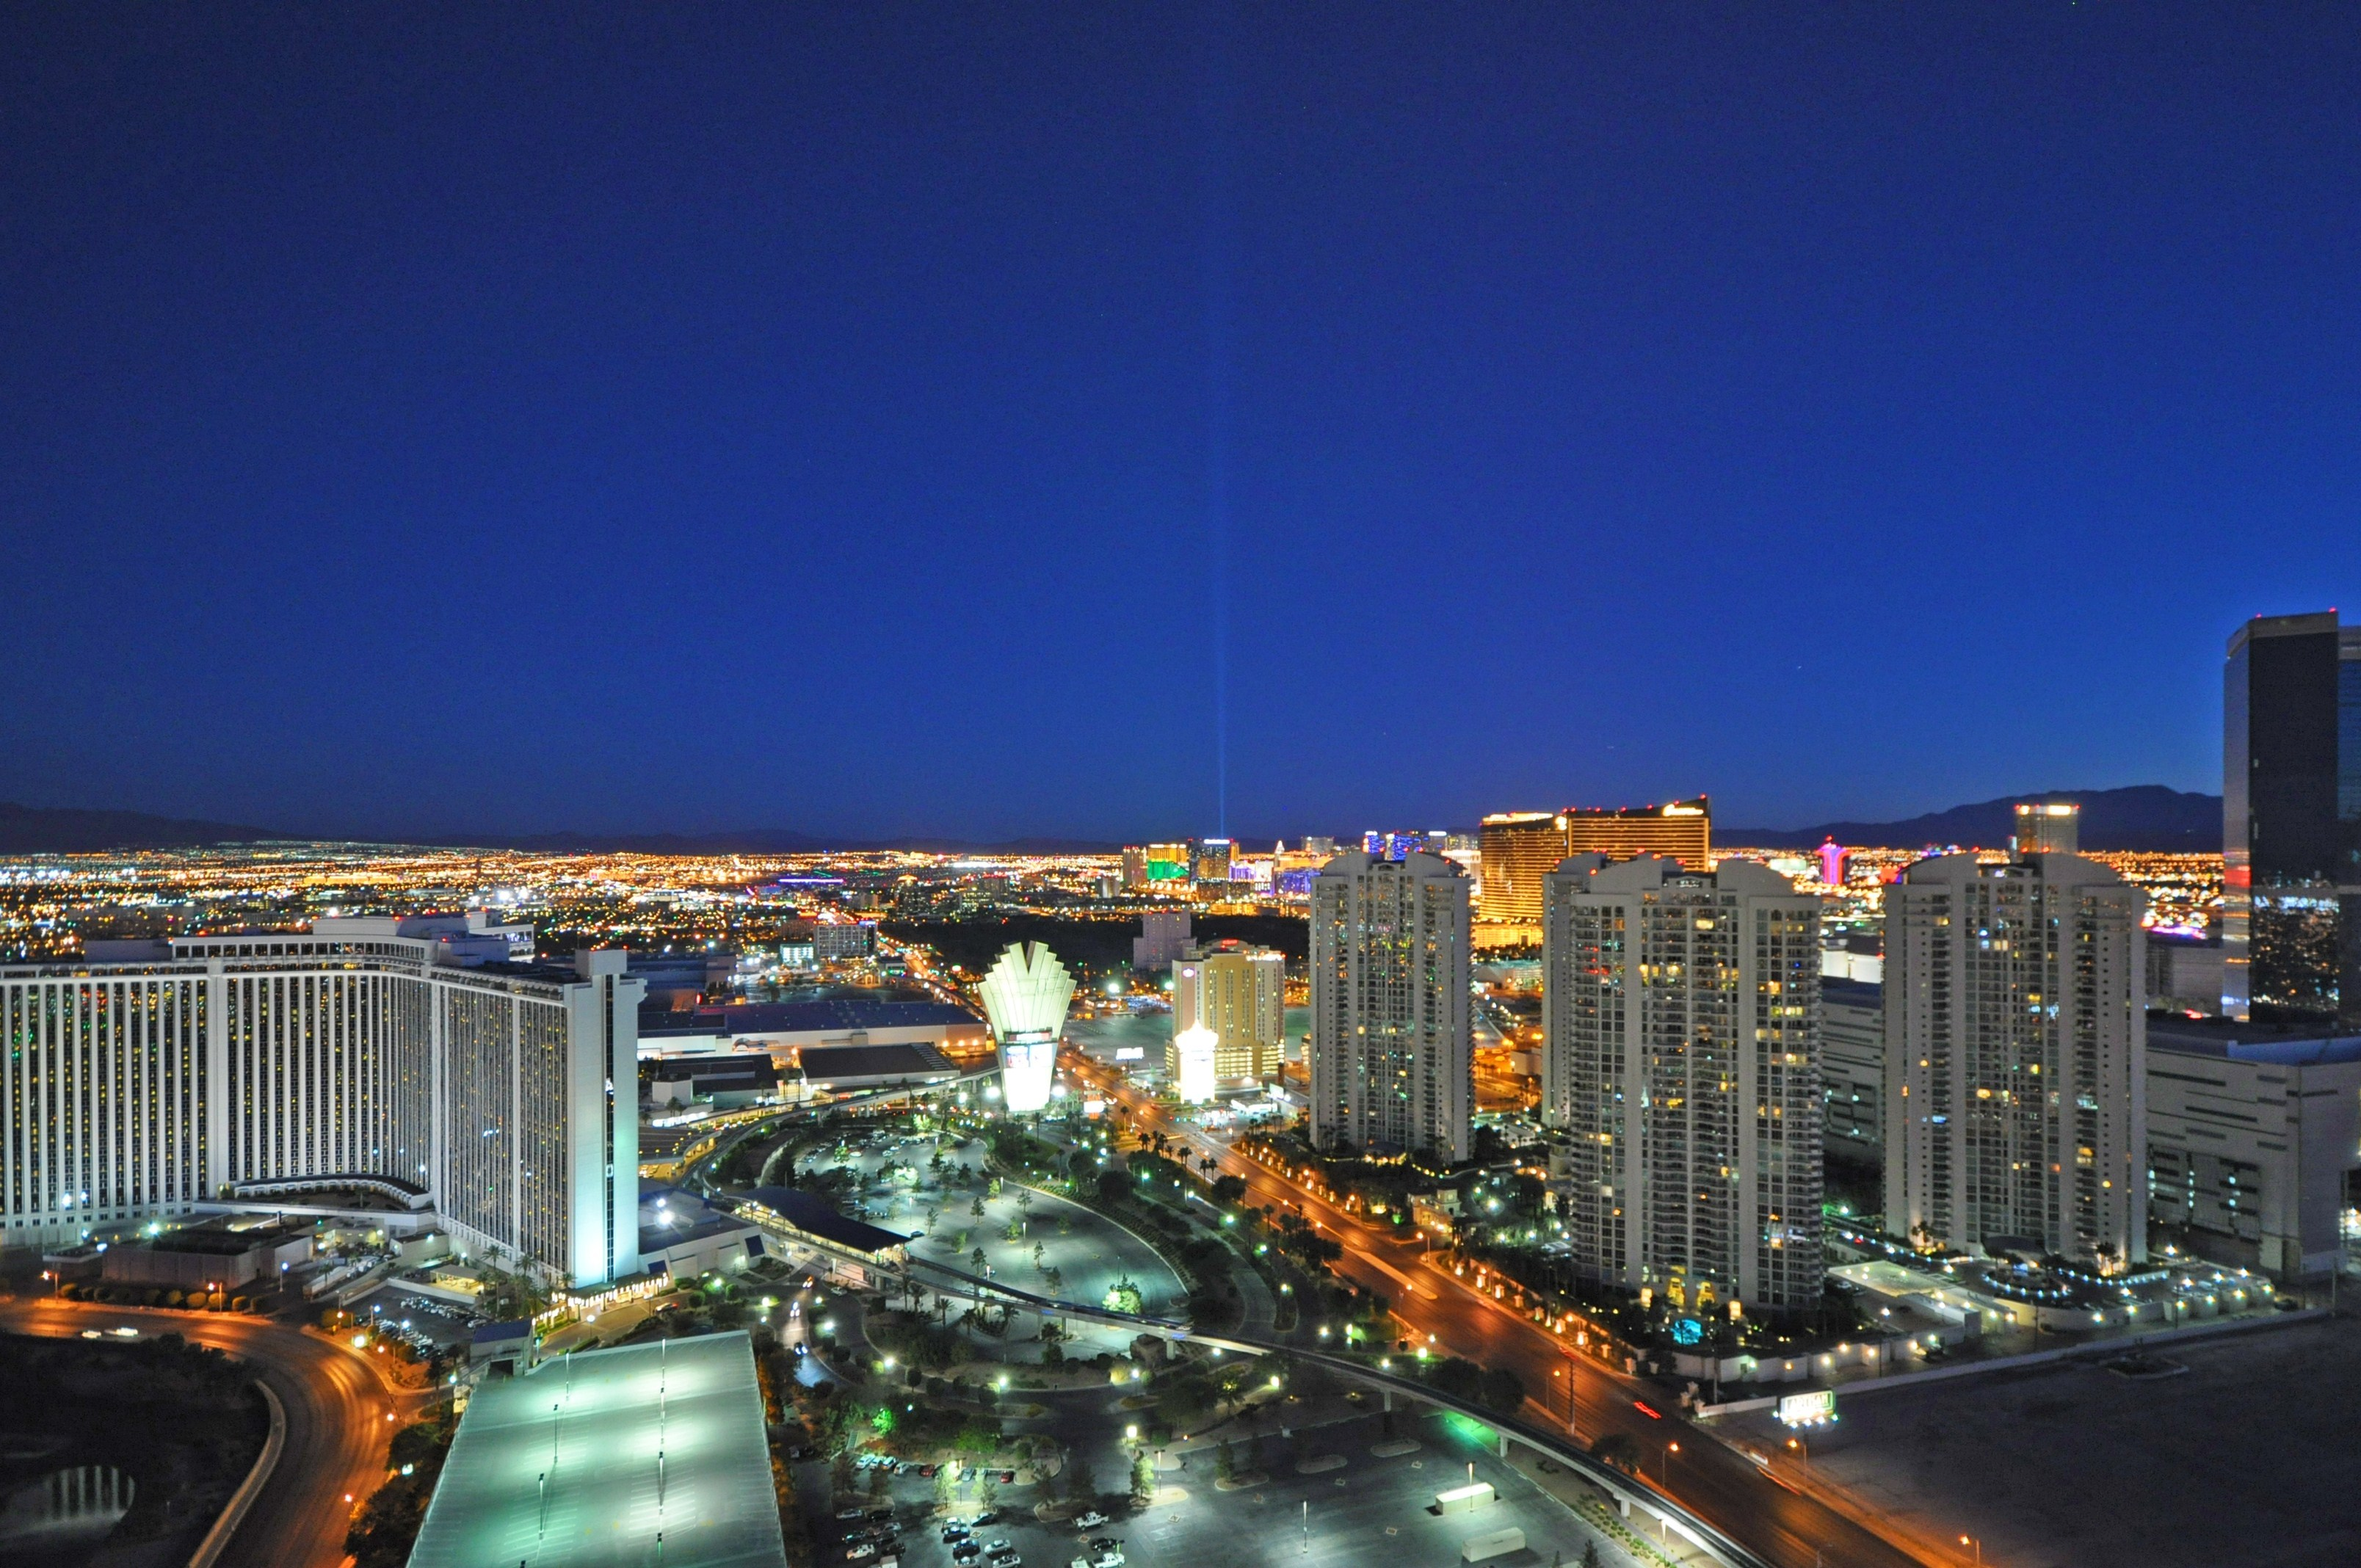 Penthouse Listing At Turnberry Towers Las Vegas 4508